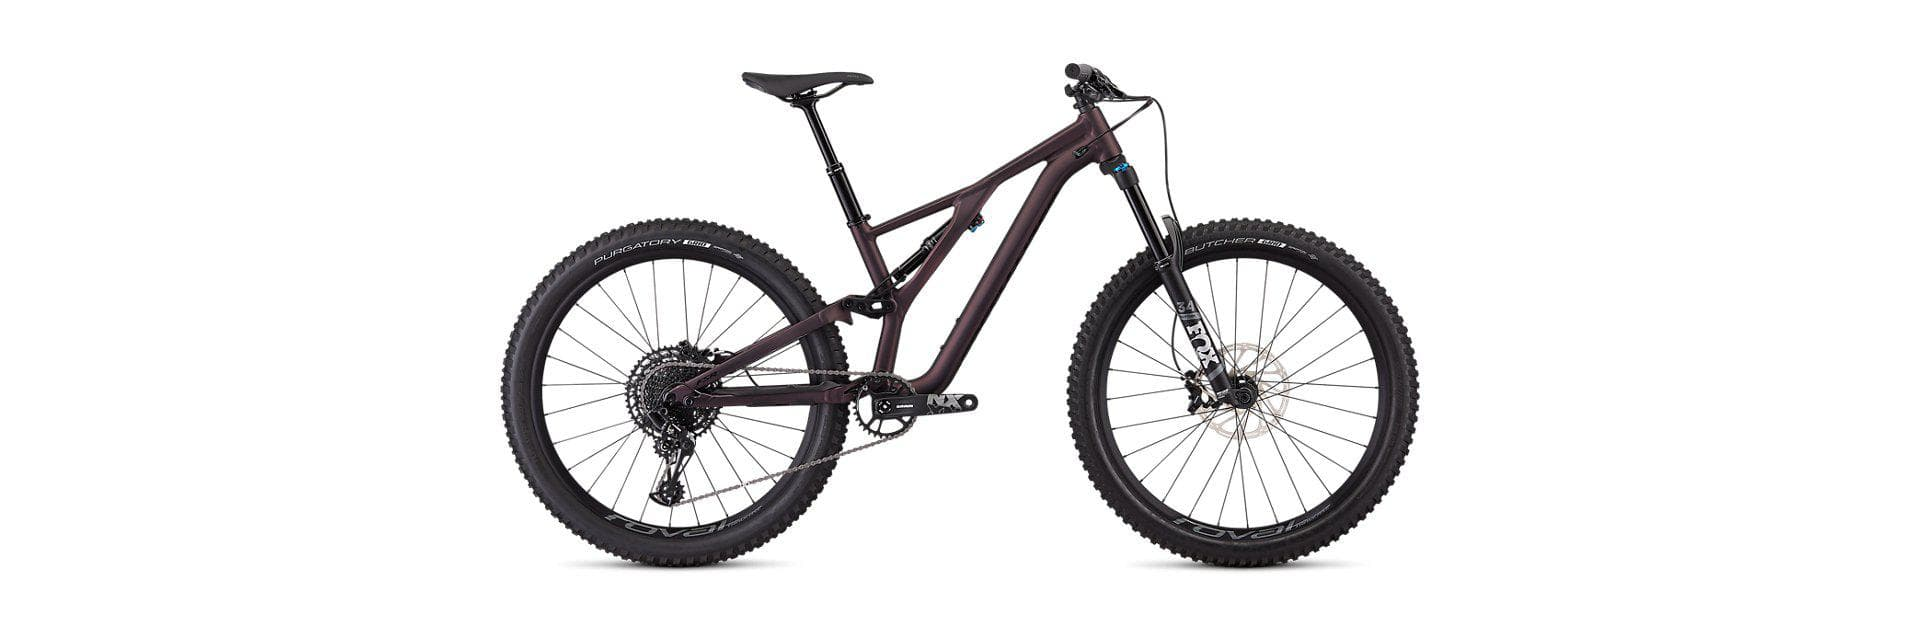 Specialized StumpJumper FSR 27.5 12 Spd Comp Women's Bike